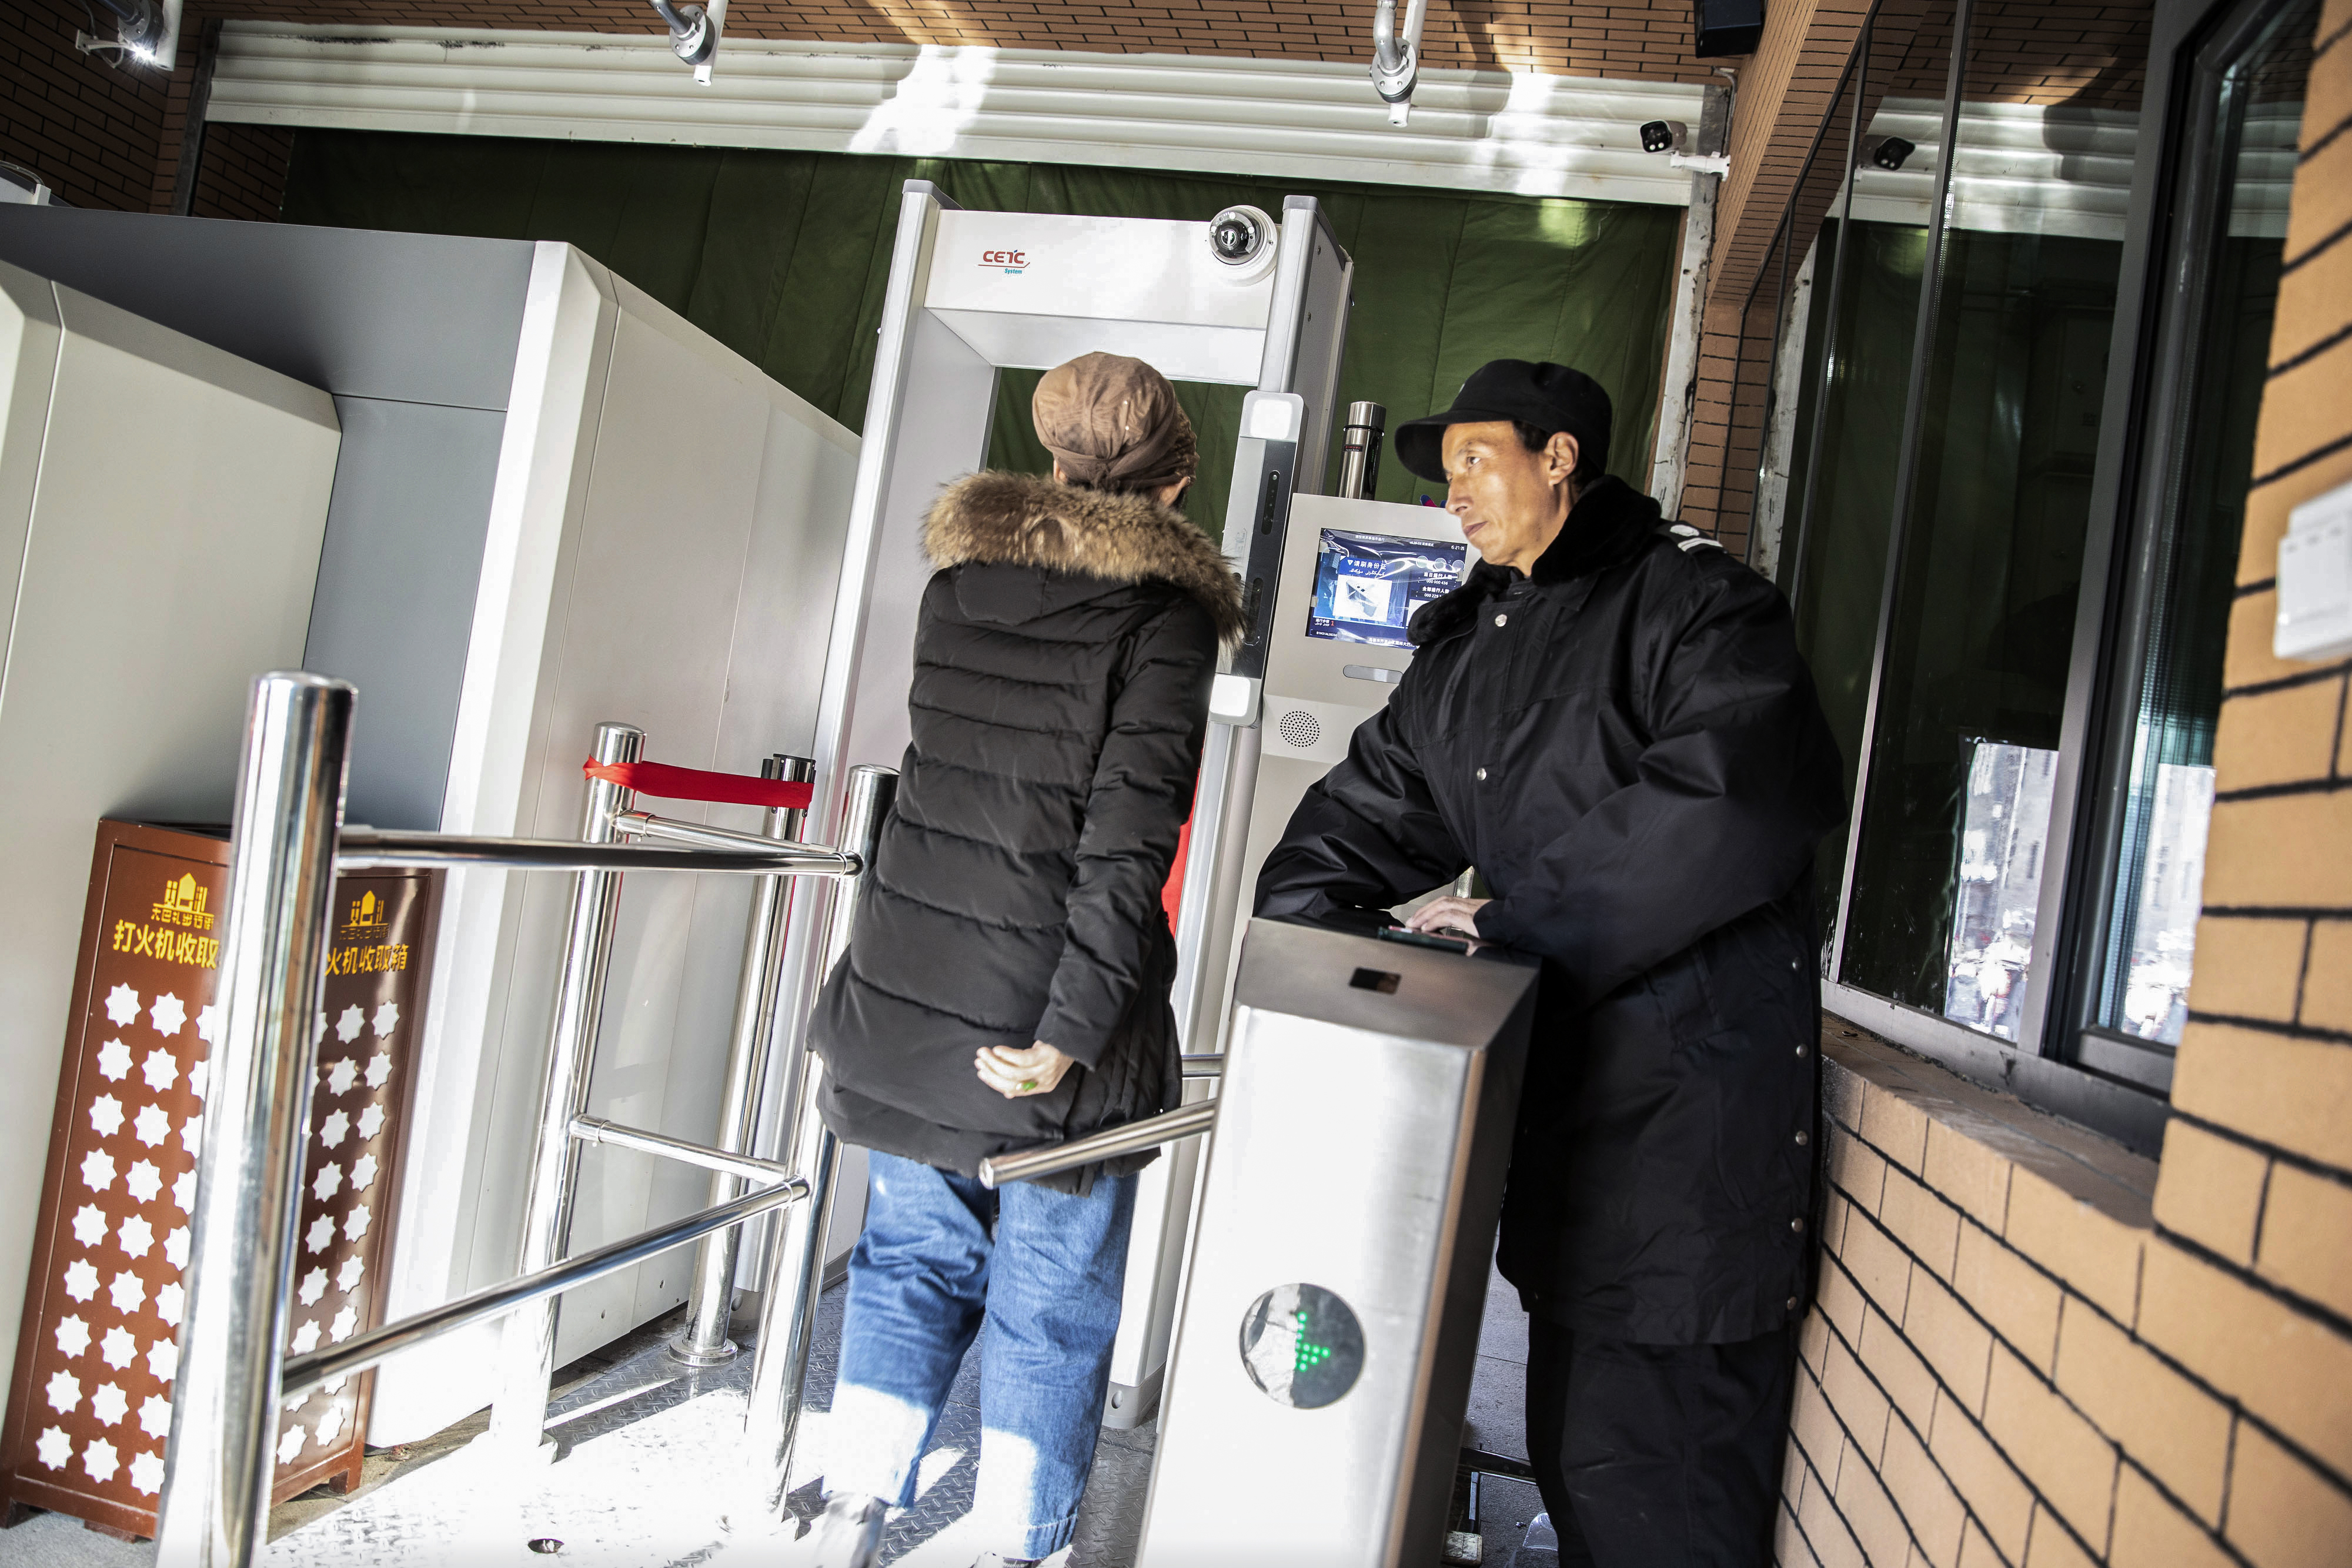 A security officer looks on as a woman passes through a checkpoint, equipped with a metal detector and facial recognition technology, to enter the main bazaar in Urumqi, Xinjiang autonomousregion, China, on Tuesday, Nov. 6, 2018. Although it represents just 1.5 percent of China's population and 1.3 percent of its economy, Xinjiang sits at the geographic heart of Xi's signature Belt and Road Initiative. Source: Bloomberg